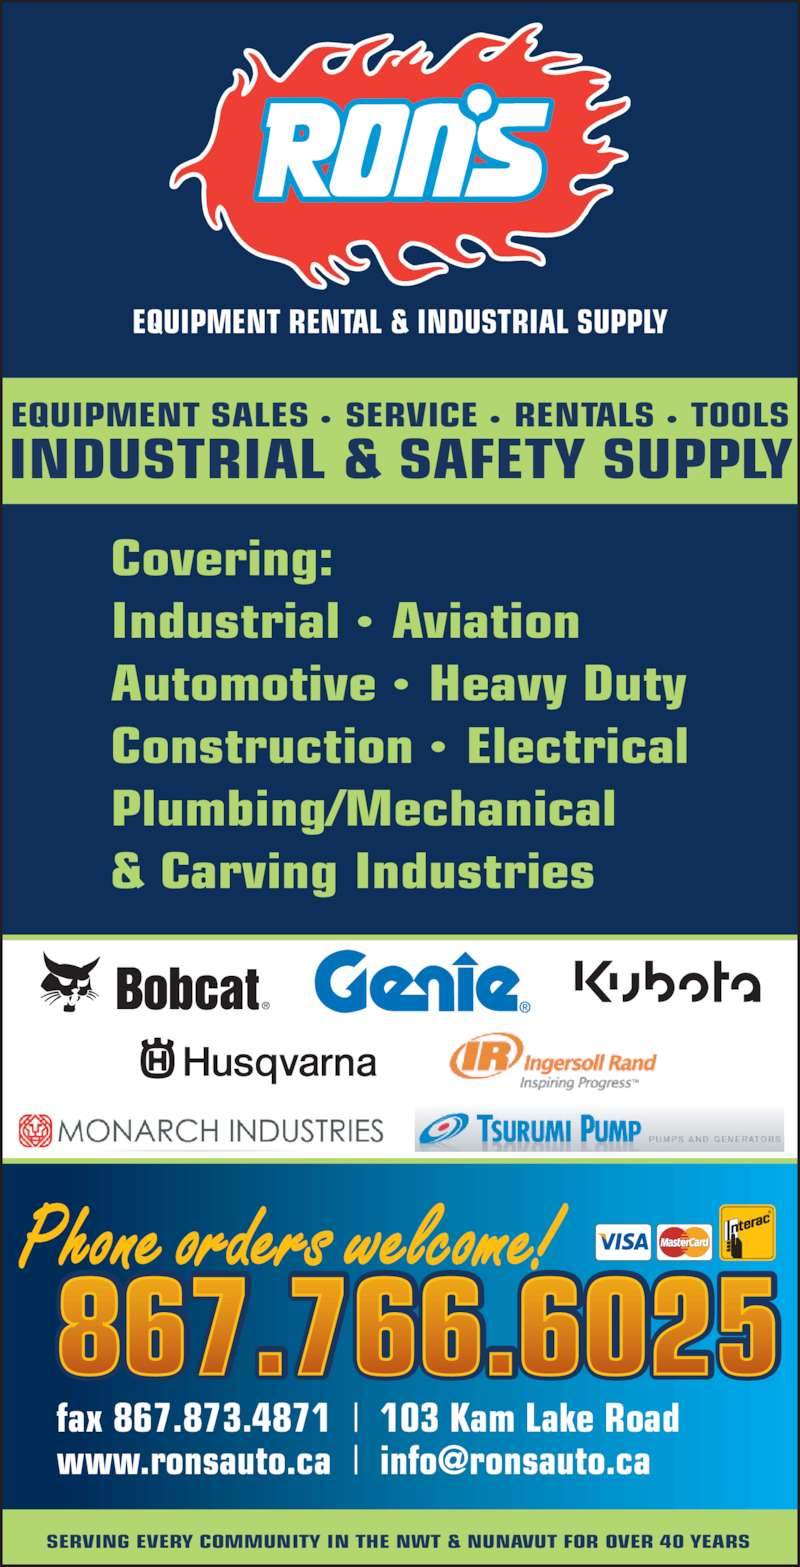 Ron's Equipment Rental & Industrial Supply Ltd (8677666025) - Display Ad - SERVING EVERY COMMUNITY IN THE NWT & NUNAVUT FOR OVER 40 YEARS EQUIPMENT RENTAL & INDUSTRIAL SUPPLY Covering:  Industrial •  Aviation Automotive •  Heavy Duty Construction •  Electrical Plumbing/Mechanical & Carving Industries Phone orders welcome! 867.766.6025 fax 867.873.4871  |  103 Kam Lake Road EQUIPMENT SALES •  SERVICE •  RENTALS •  TOOLS INDUSTRIAL & SAFETY SUPPLY